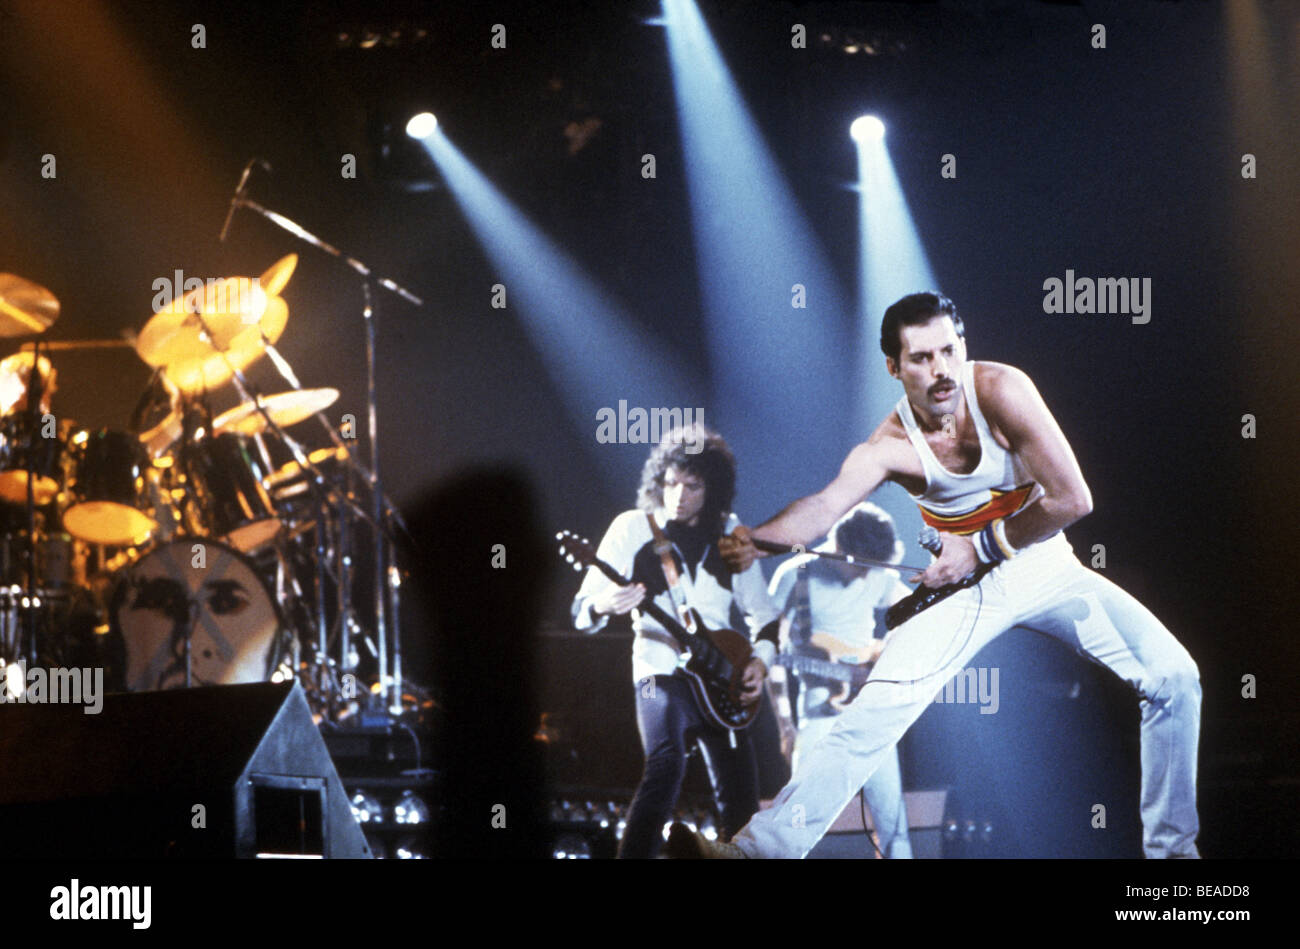 QUEEN - UK rock group about 1985 - Stock Image